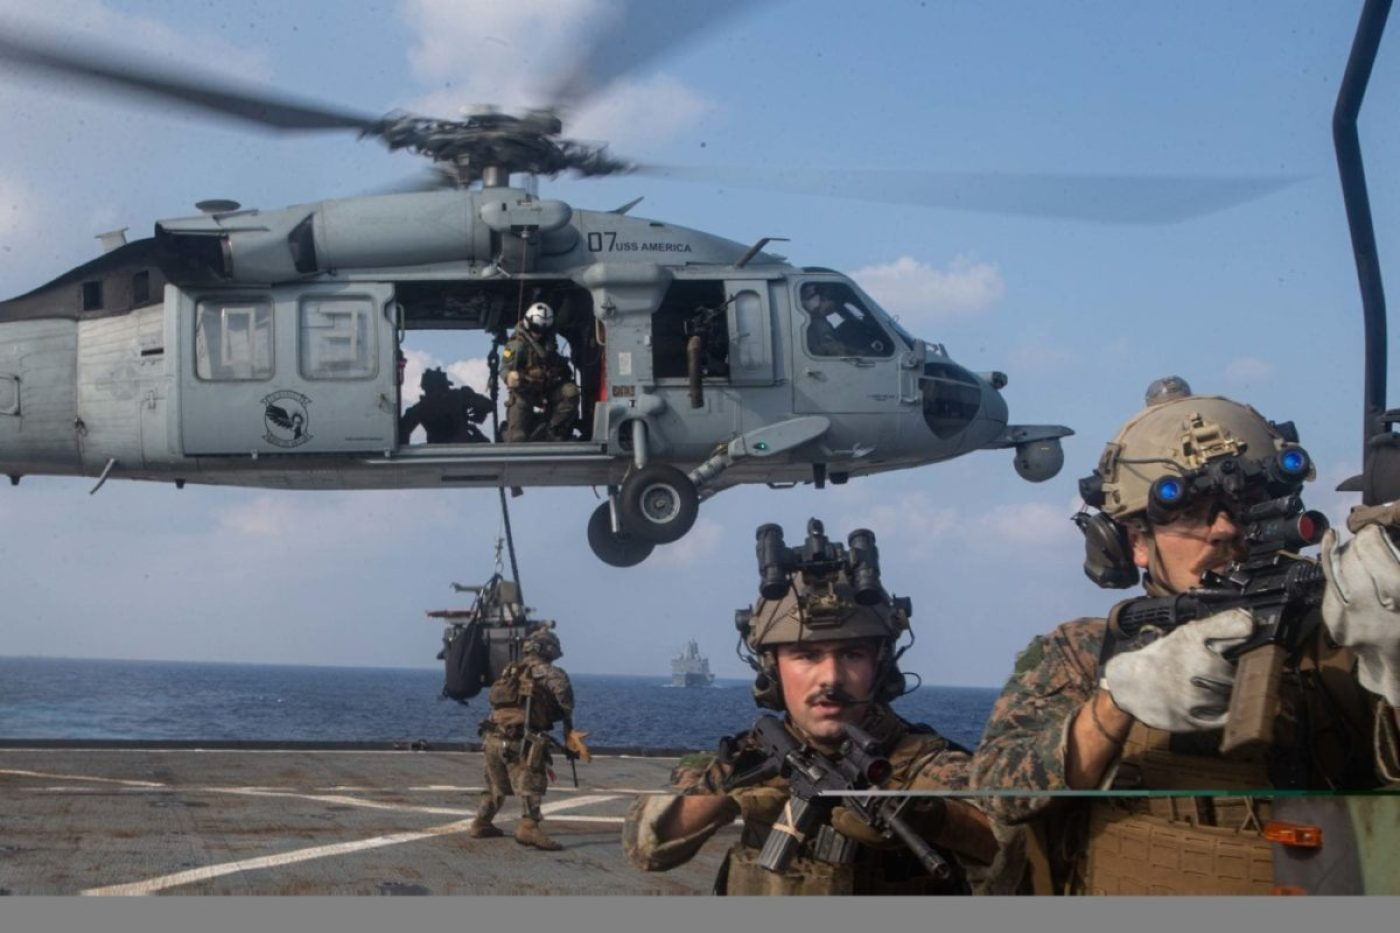 U.S. Marines with Reconnaissance Marines with the Maritime Raid Force, 31st Marine Expeditionary Unit (MEU) fast rope from a MH-60S Sea Hawk helicopter assigned to the Archangels of Helicopter Sea Combat Squadron (HSC) 25 Detachment 6 during a simulated visit, board, search, and seizure (VBSS) mission aboard dock landing ship USS Germantown (LSD 42). (U.S. Marine Corps photo by Sgt. Danny Gonzalez)